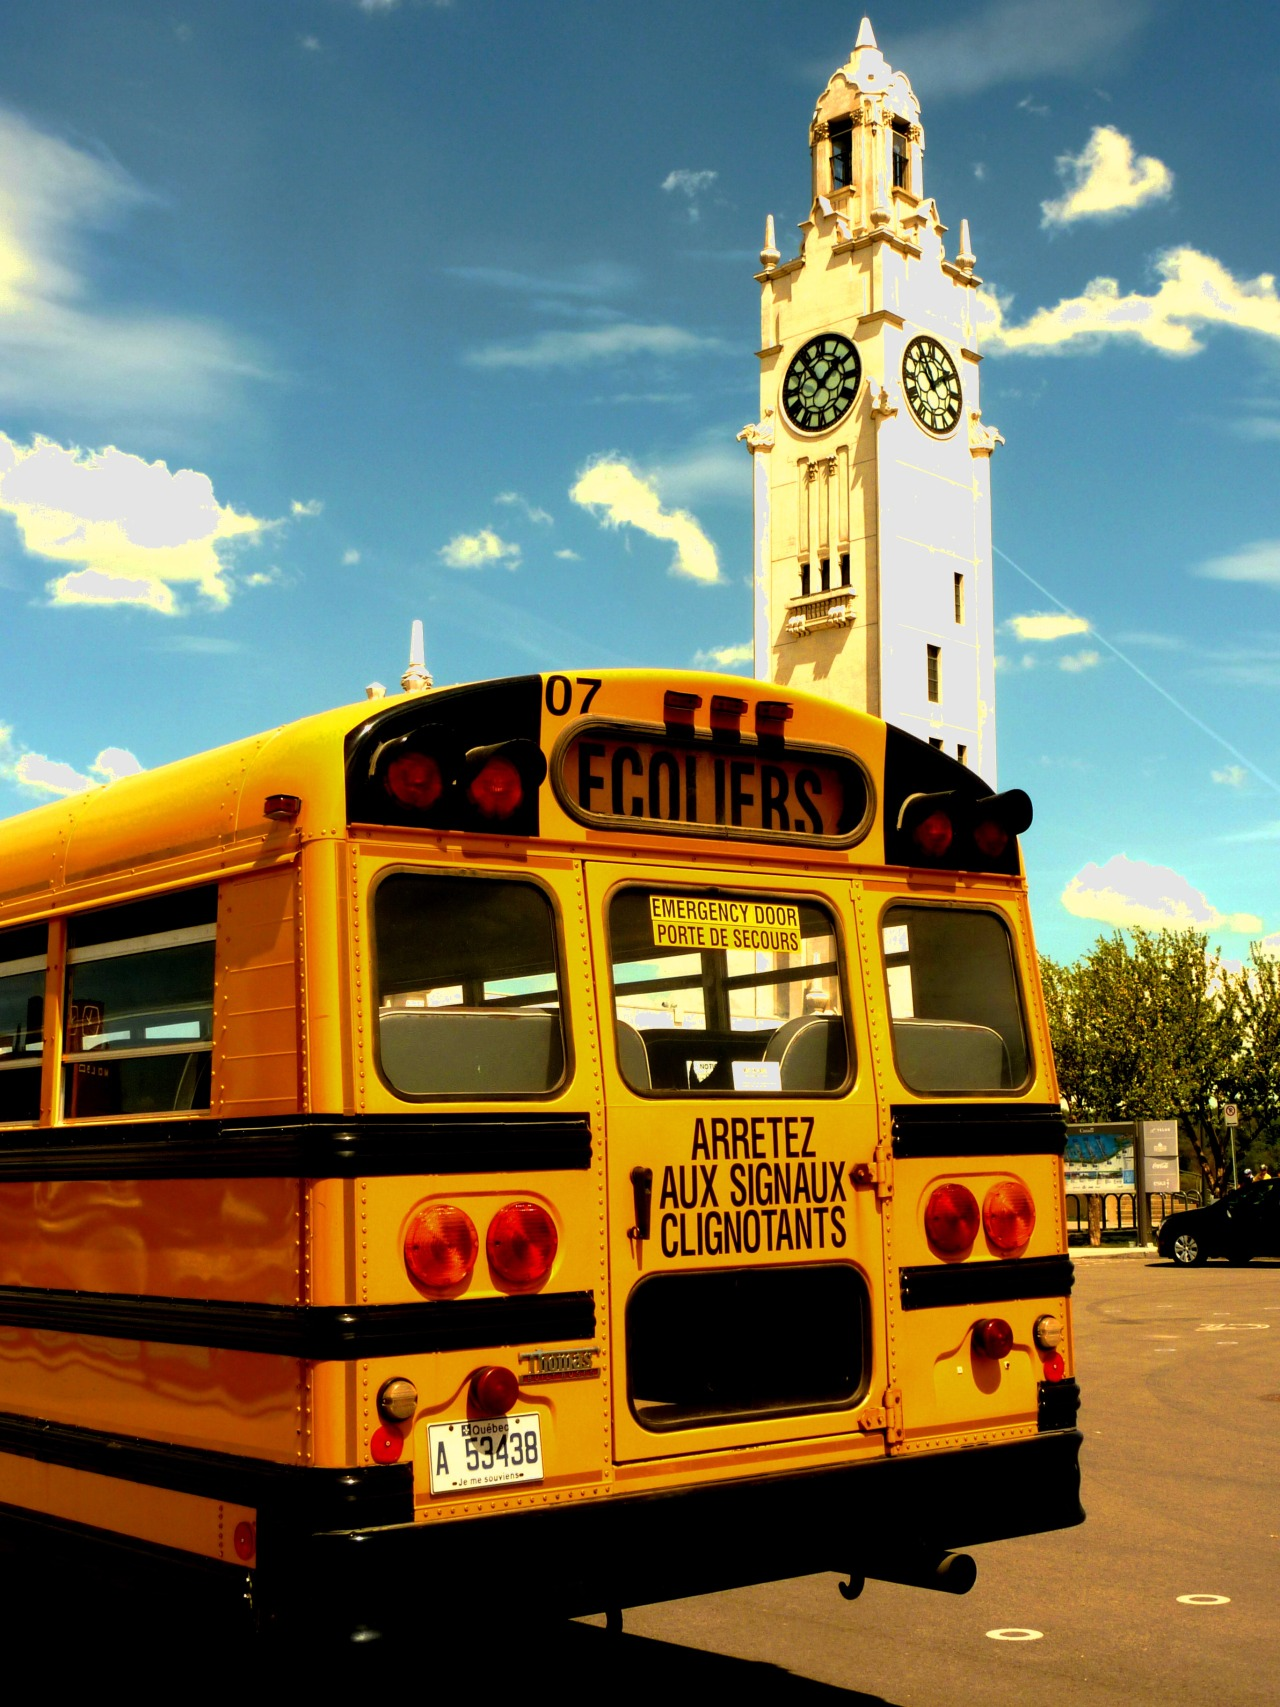 Montreal, School bus and Clock Tower By D. Caro